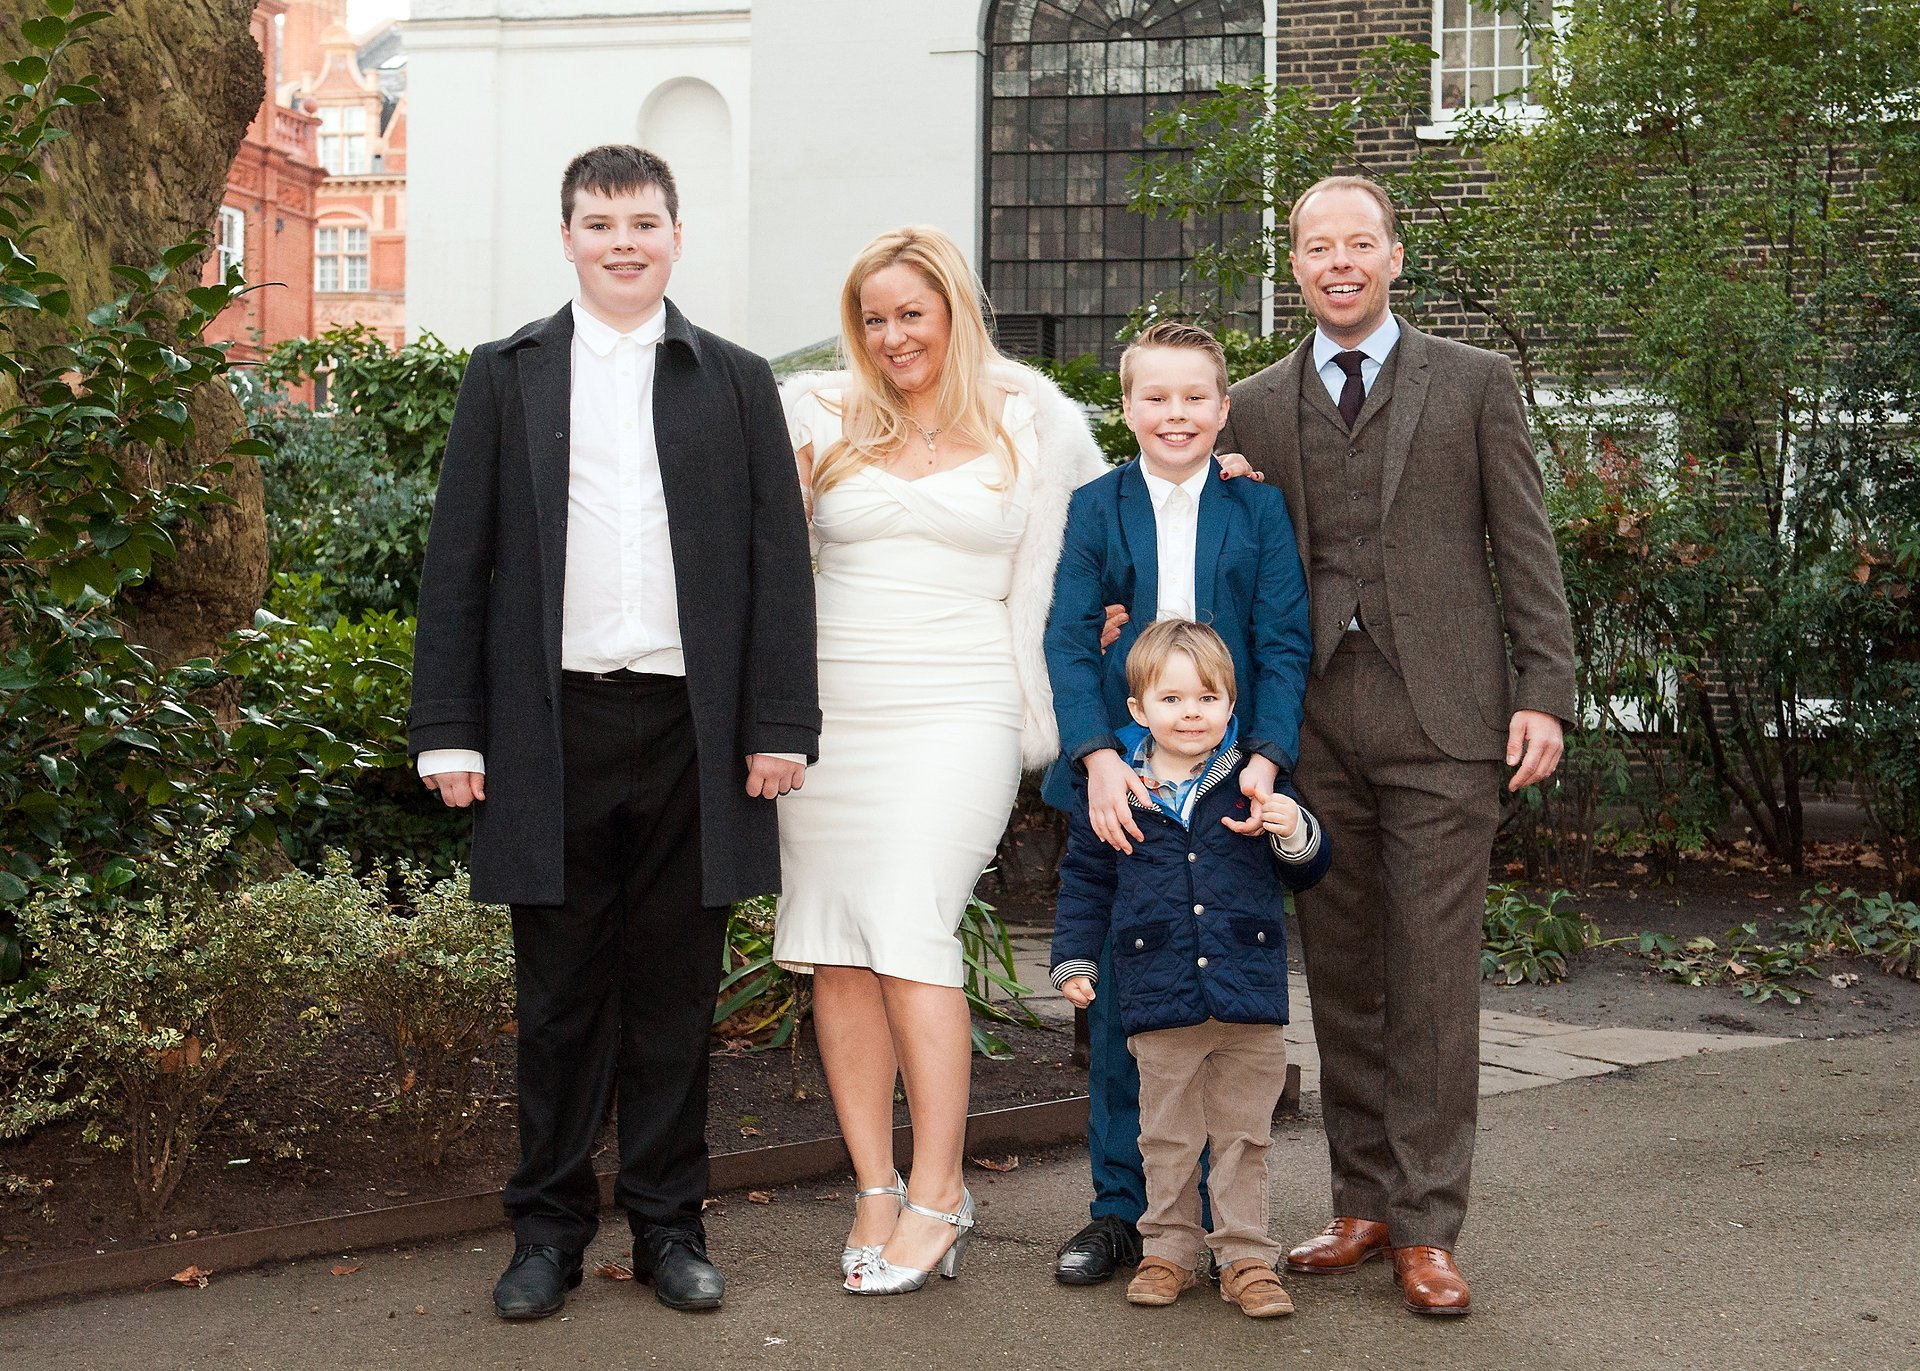 A family in Mount Street Gardens at dusk just before a wedding at next door Mayfair Library and the Marylebone Room